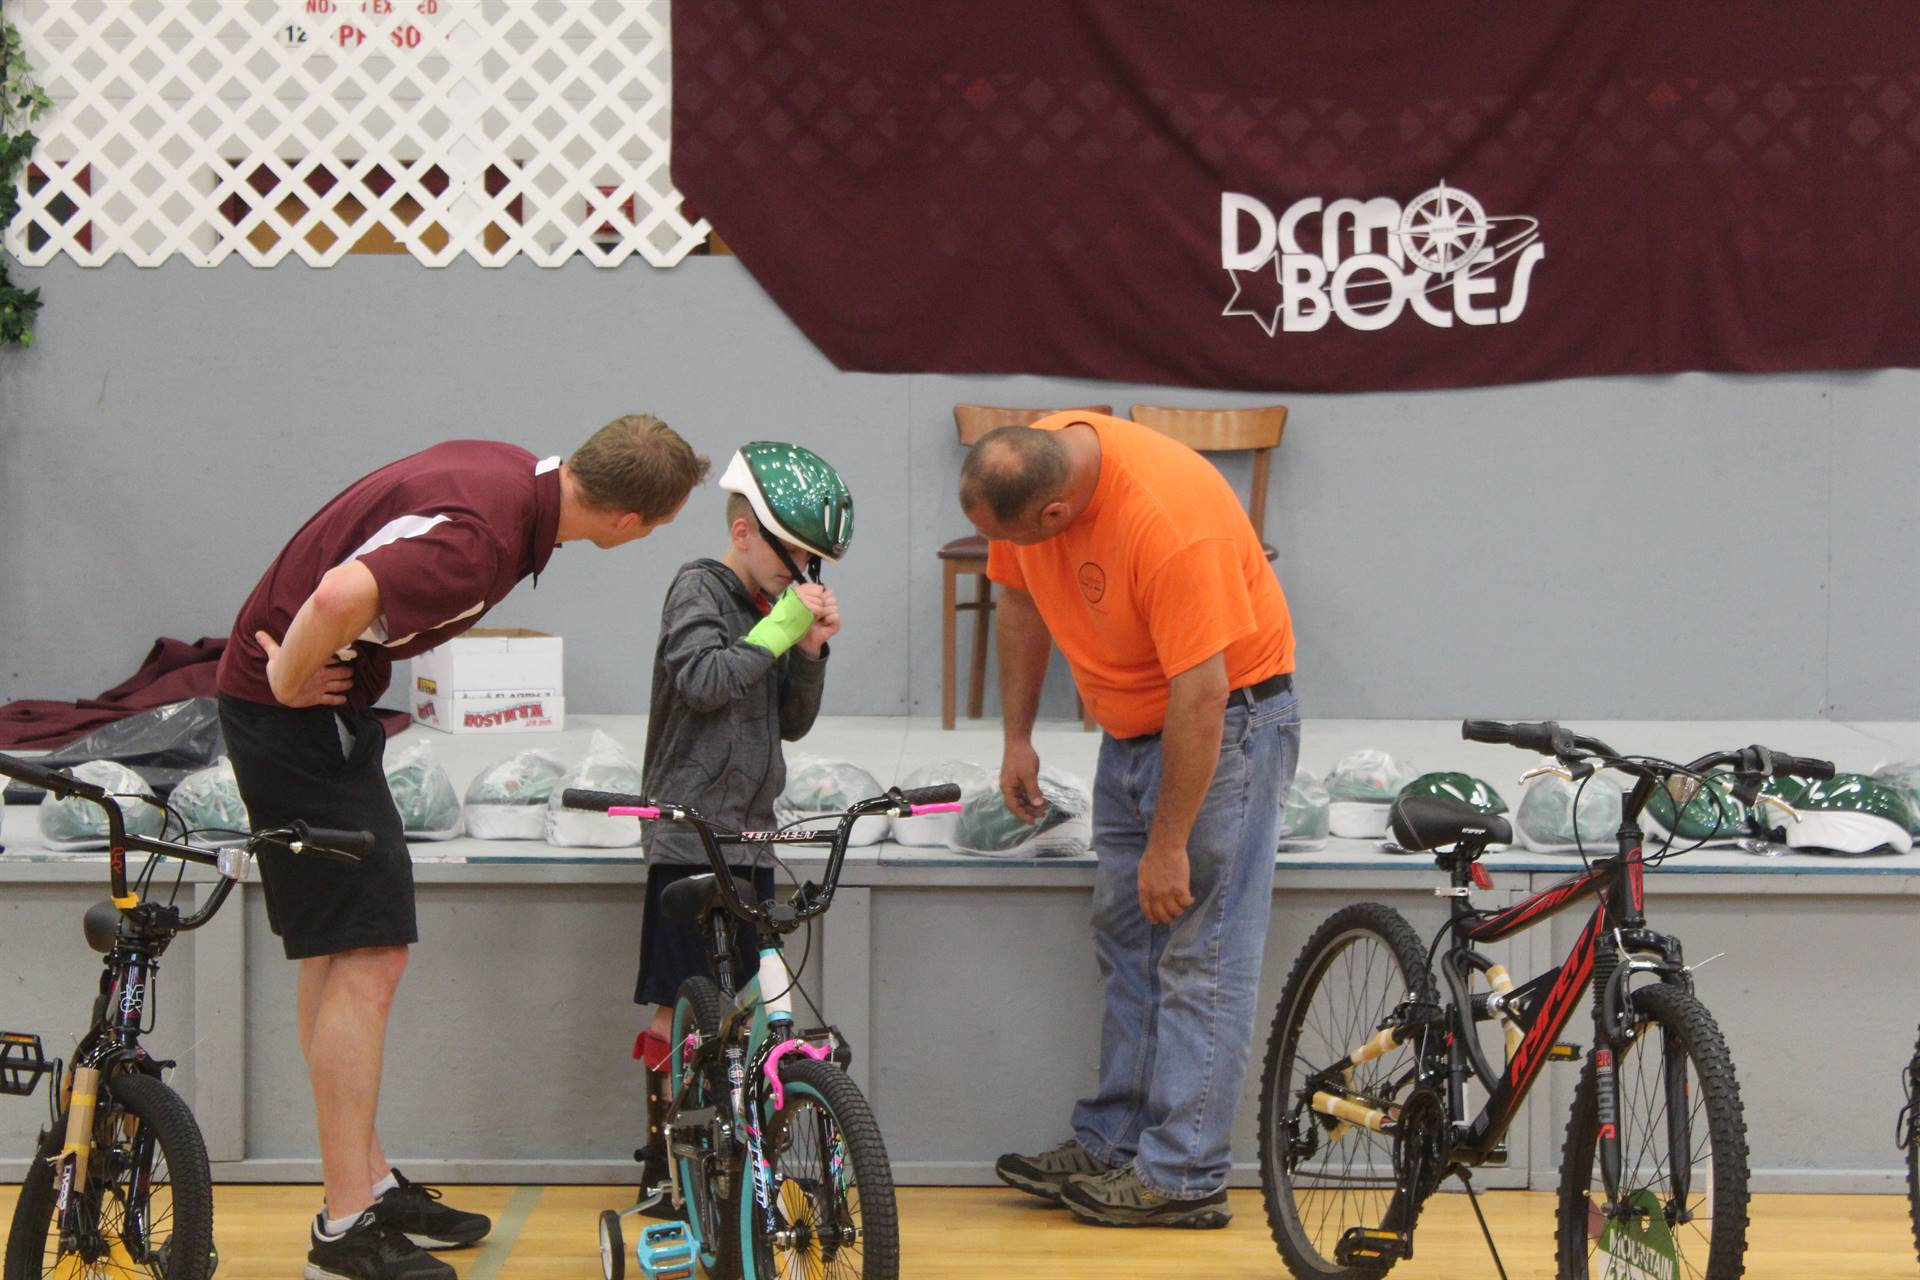 vendor donating bicycles to students